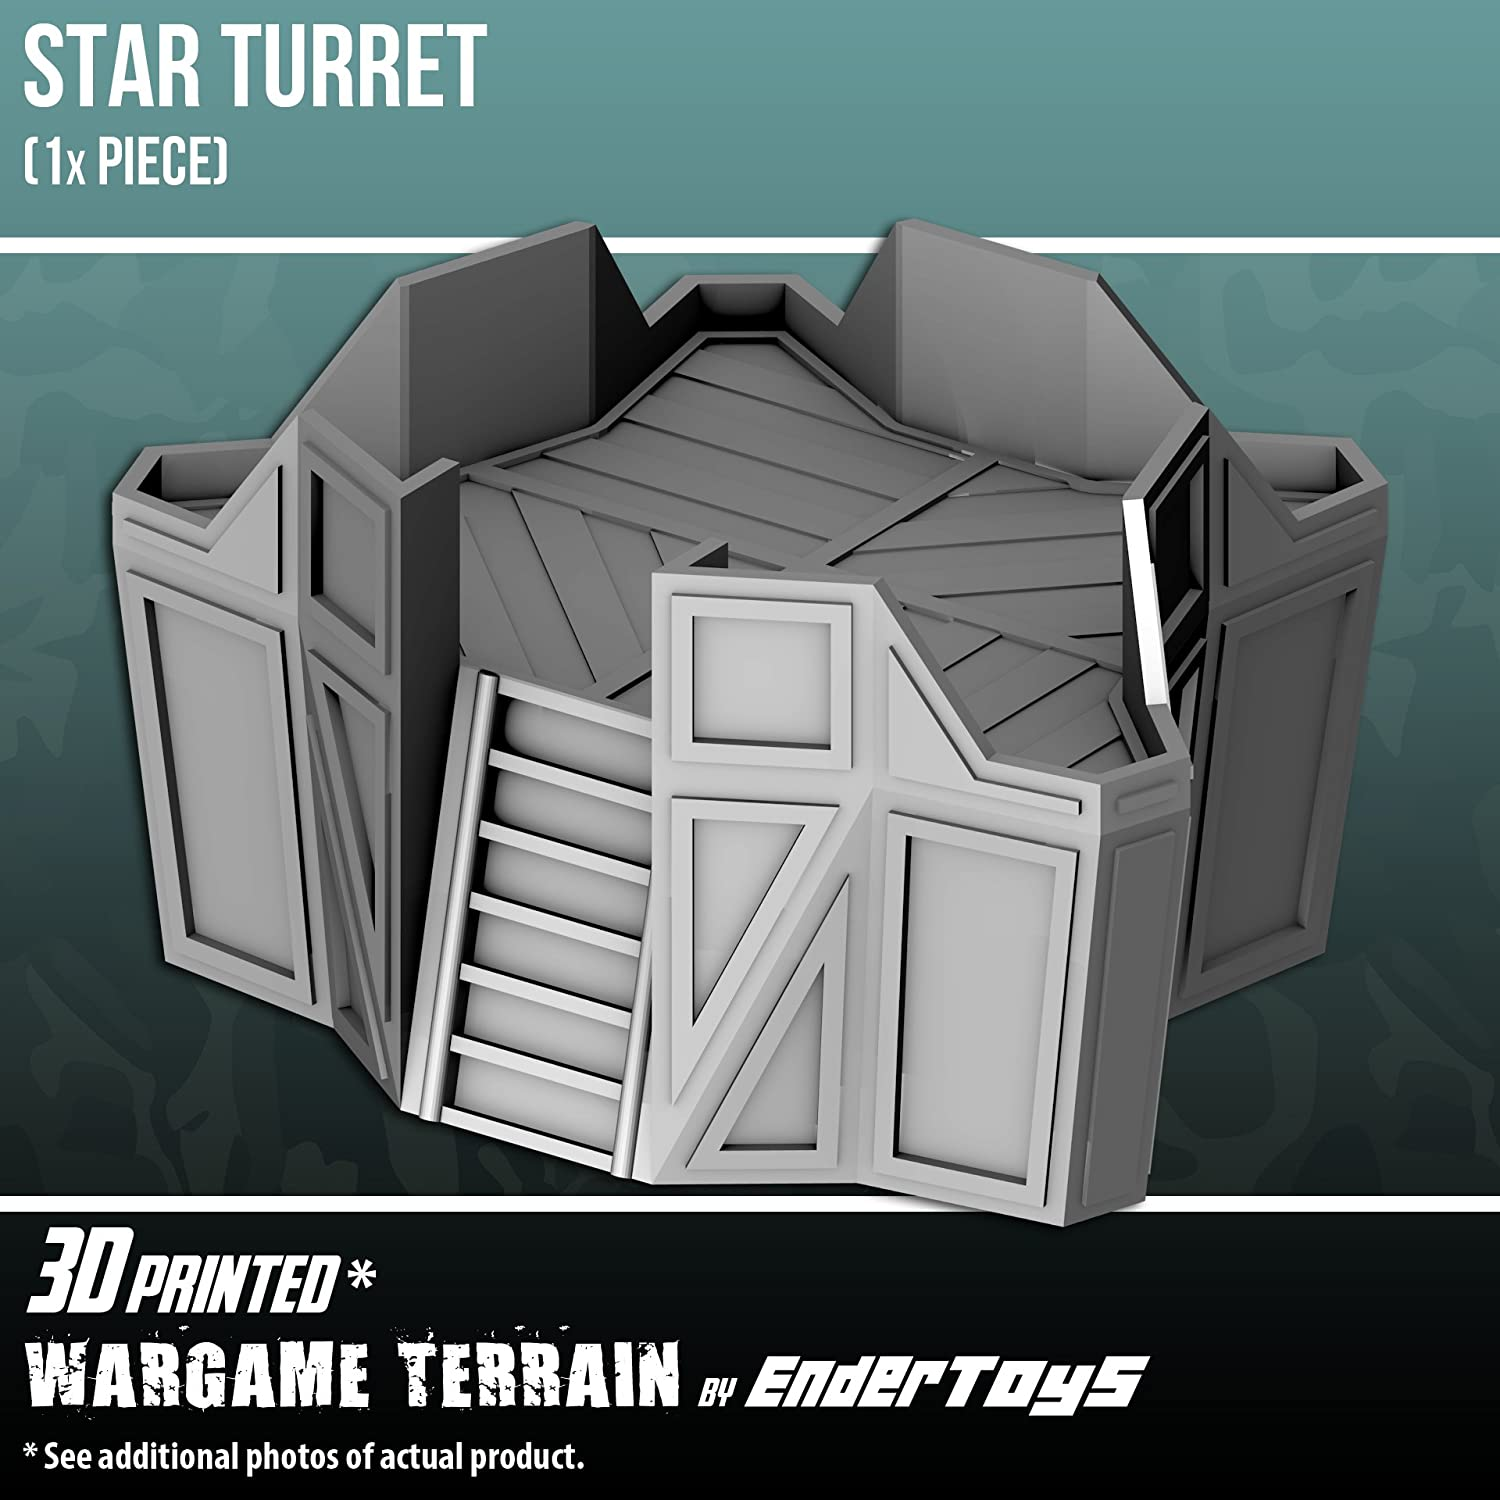 EnderToys Star Turret, 3D Printed Tabletop RPG Scenery and Wargame Terrain for 28mm Miniatures